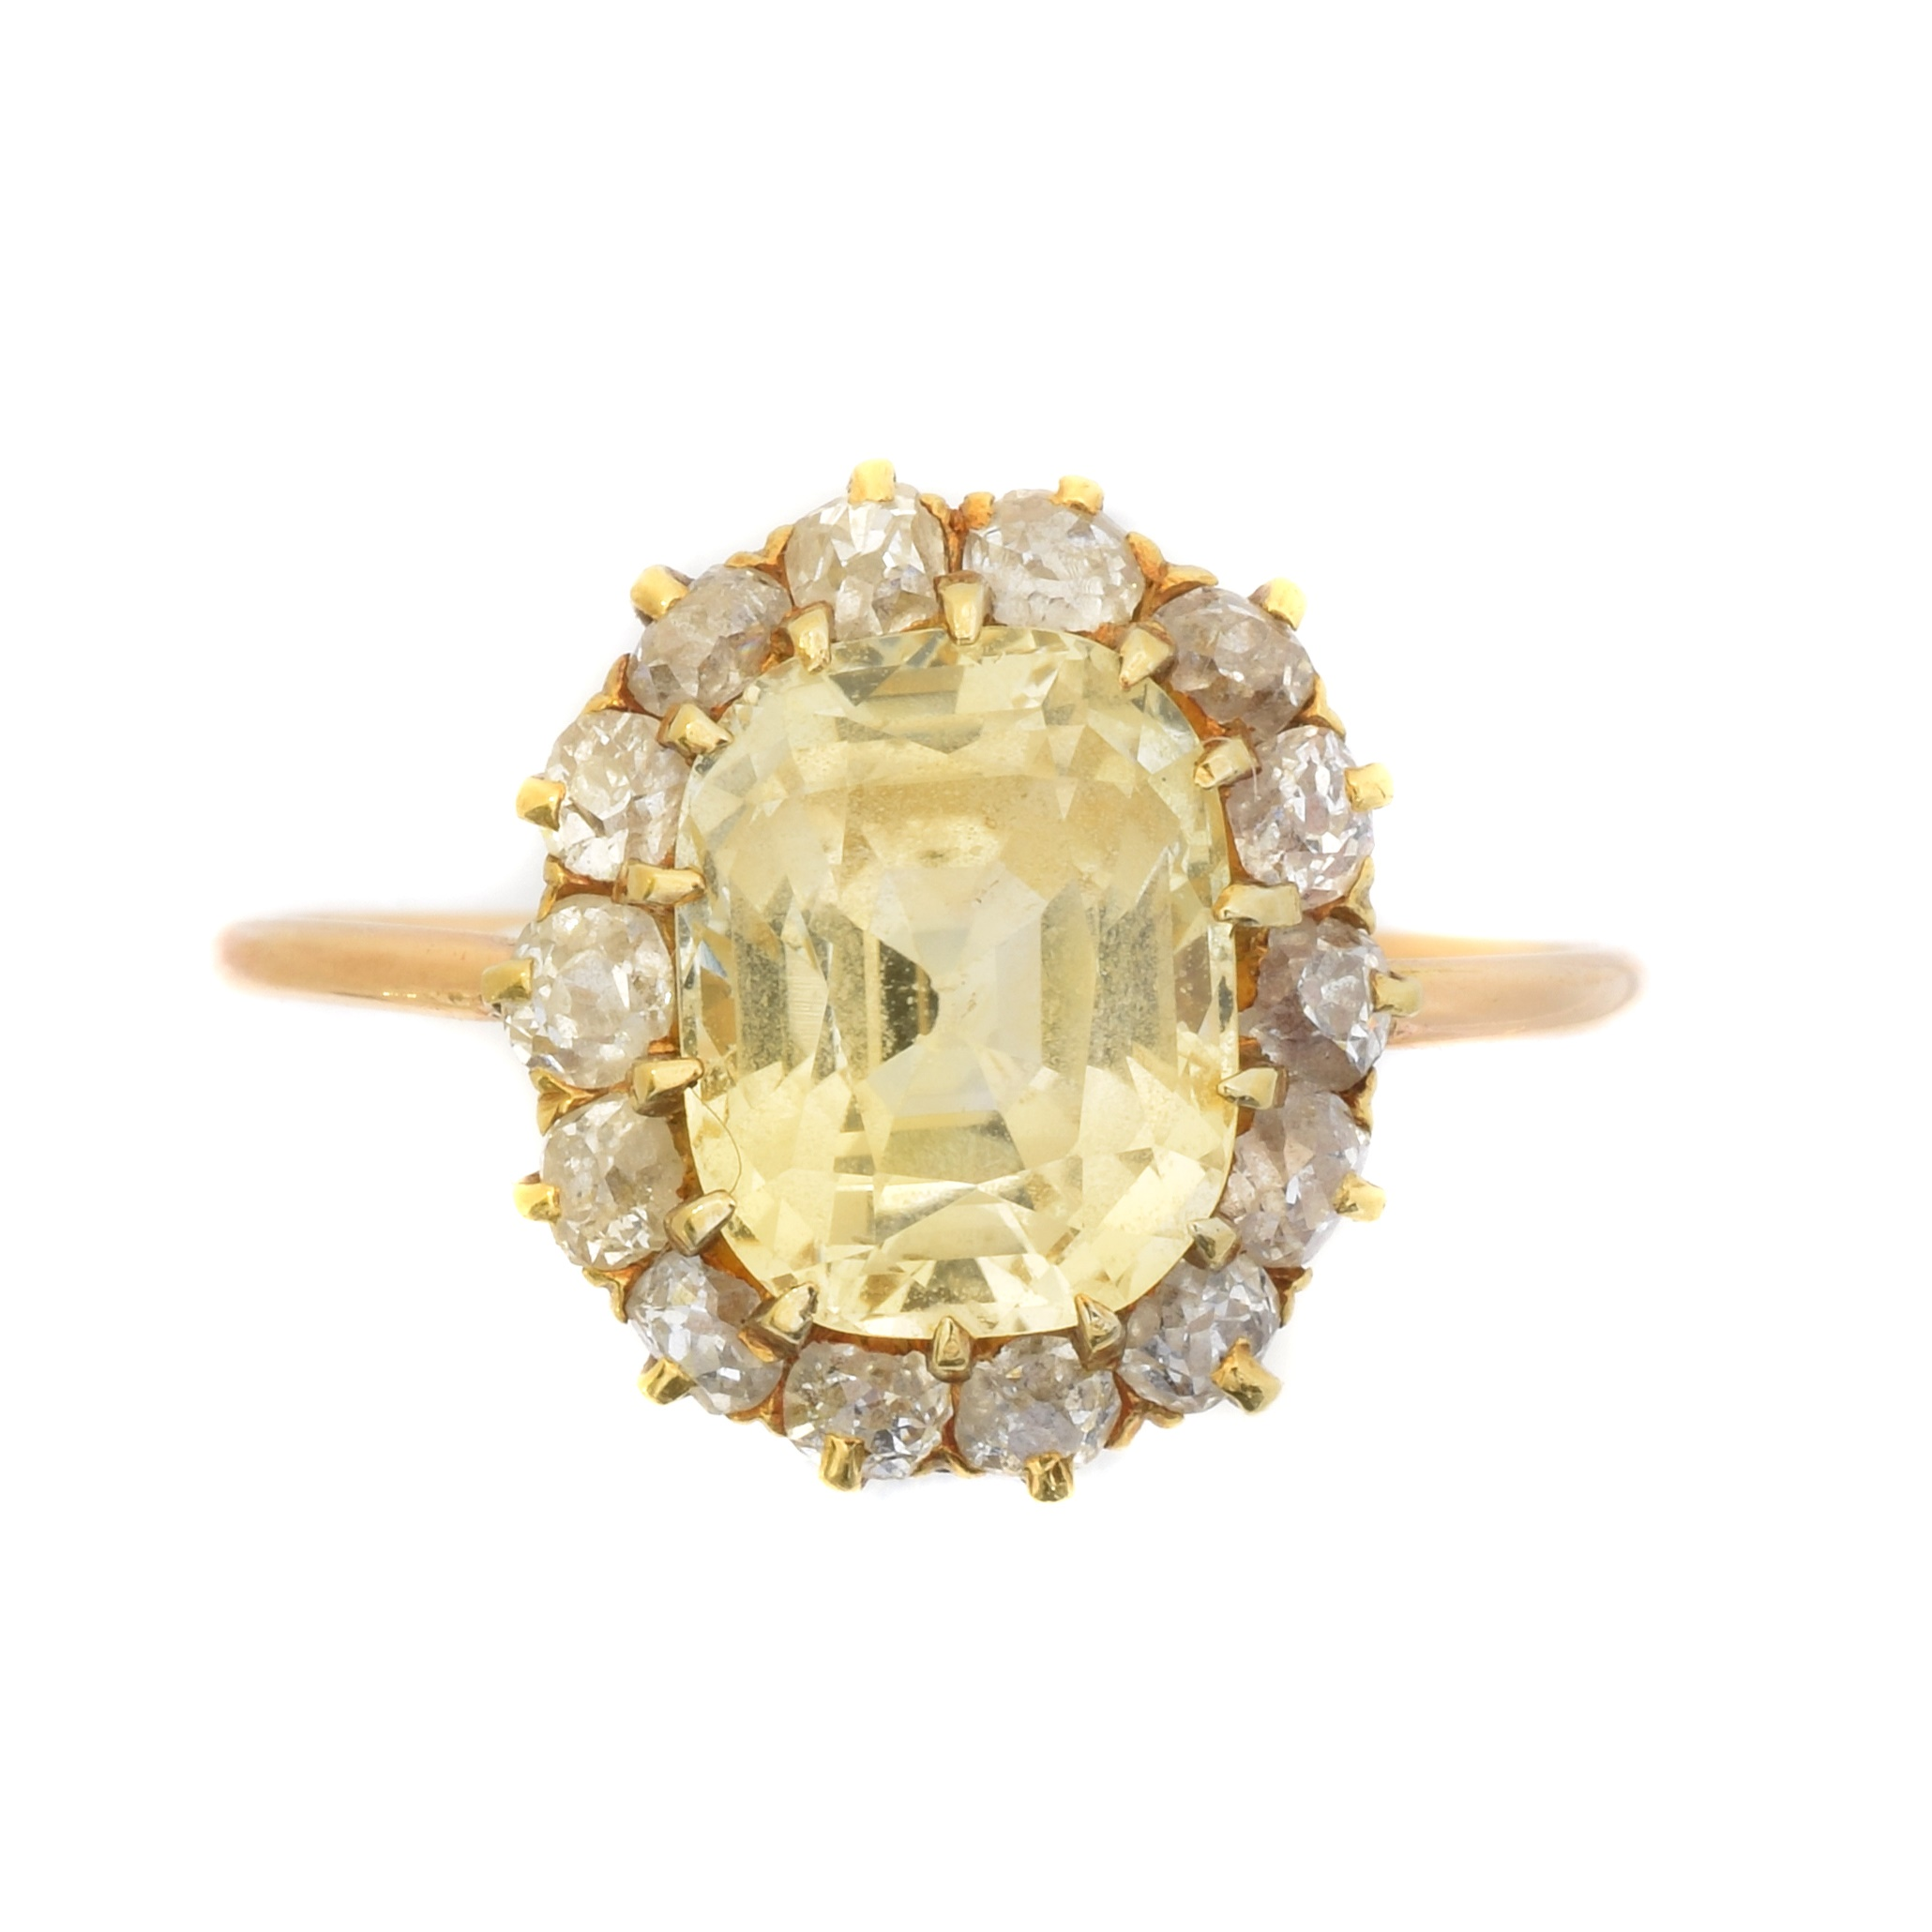 A sapphire and diamond cluster ring, the cushion shape yellow sapphire weighing approx. 3.50cts within an old cut diamond surround, estimated total diamond weight 0.70ct, ring size P1/2, gross weight 3.2g.